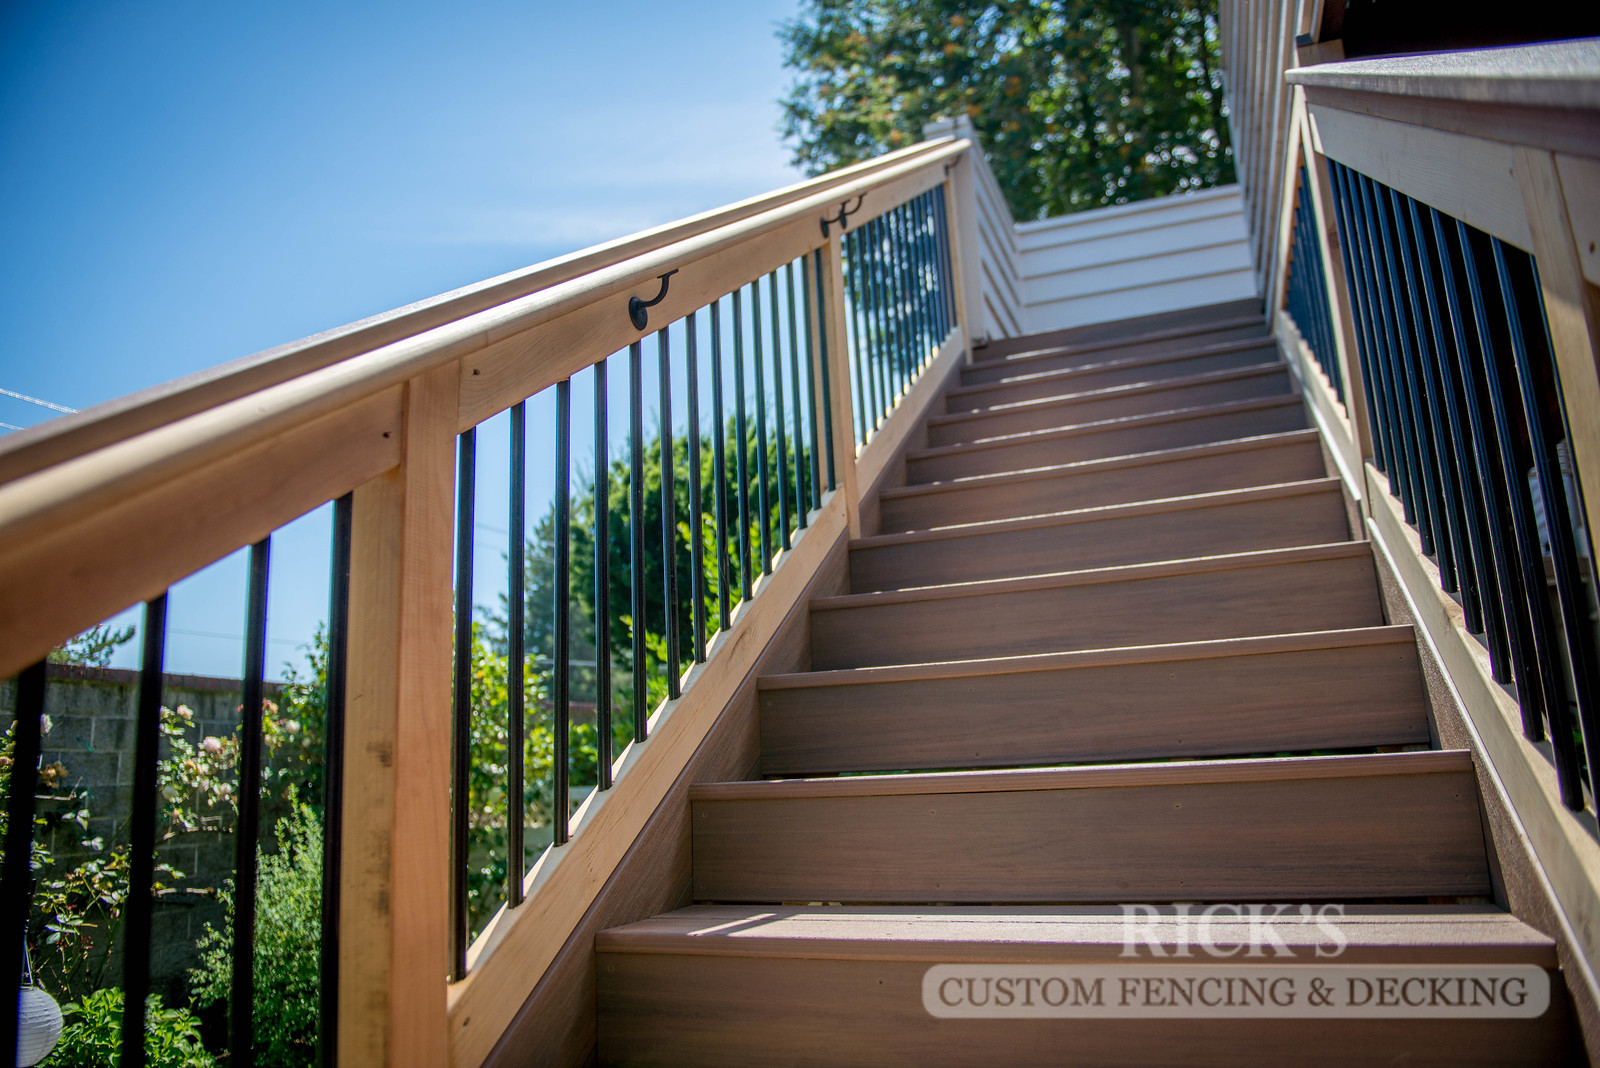 1504 - Cedar Handrail with Aluminum Balusters